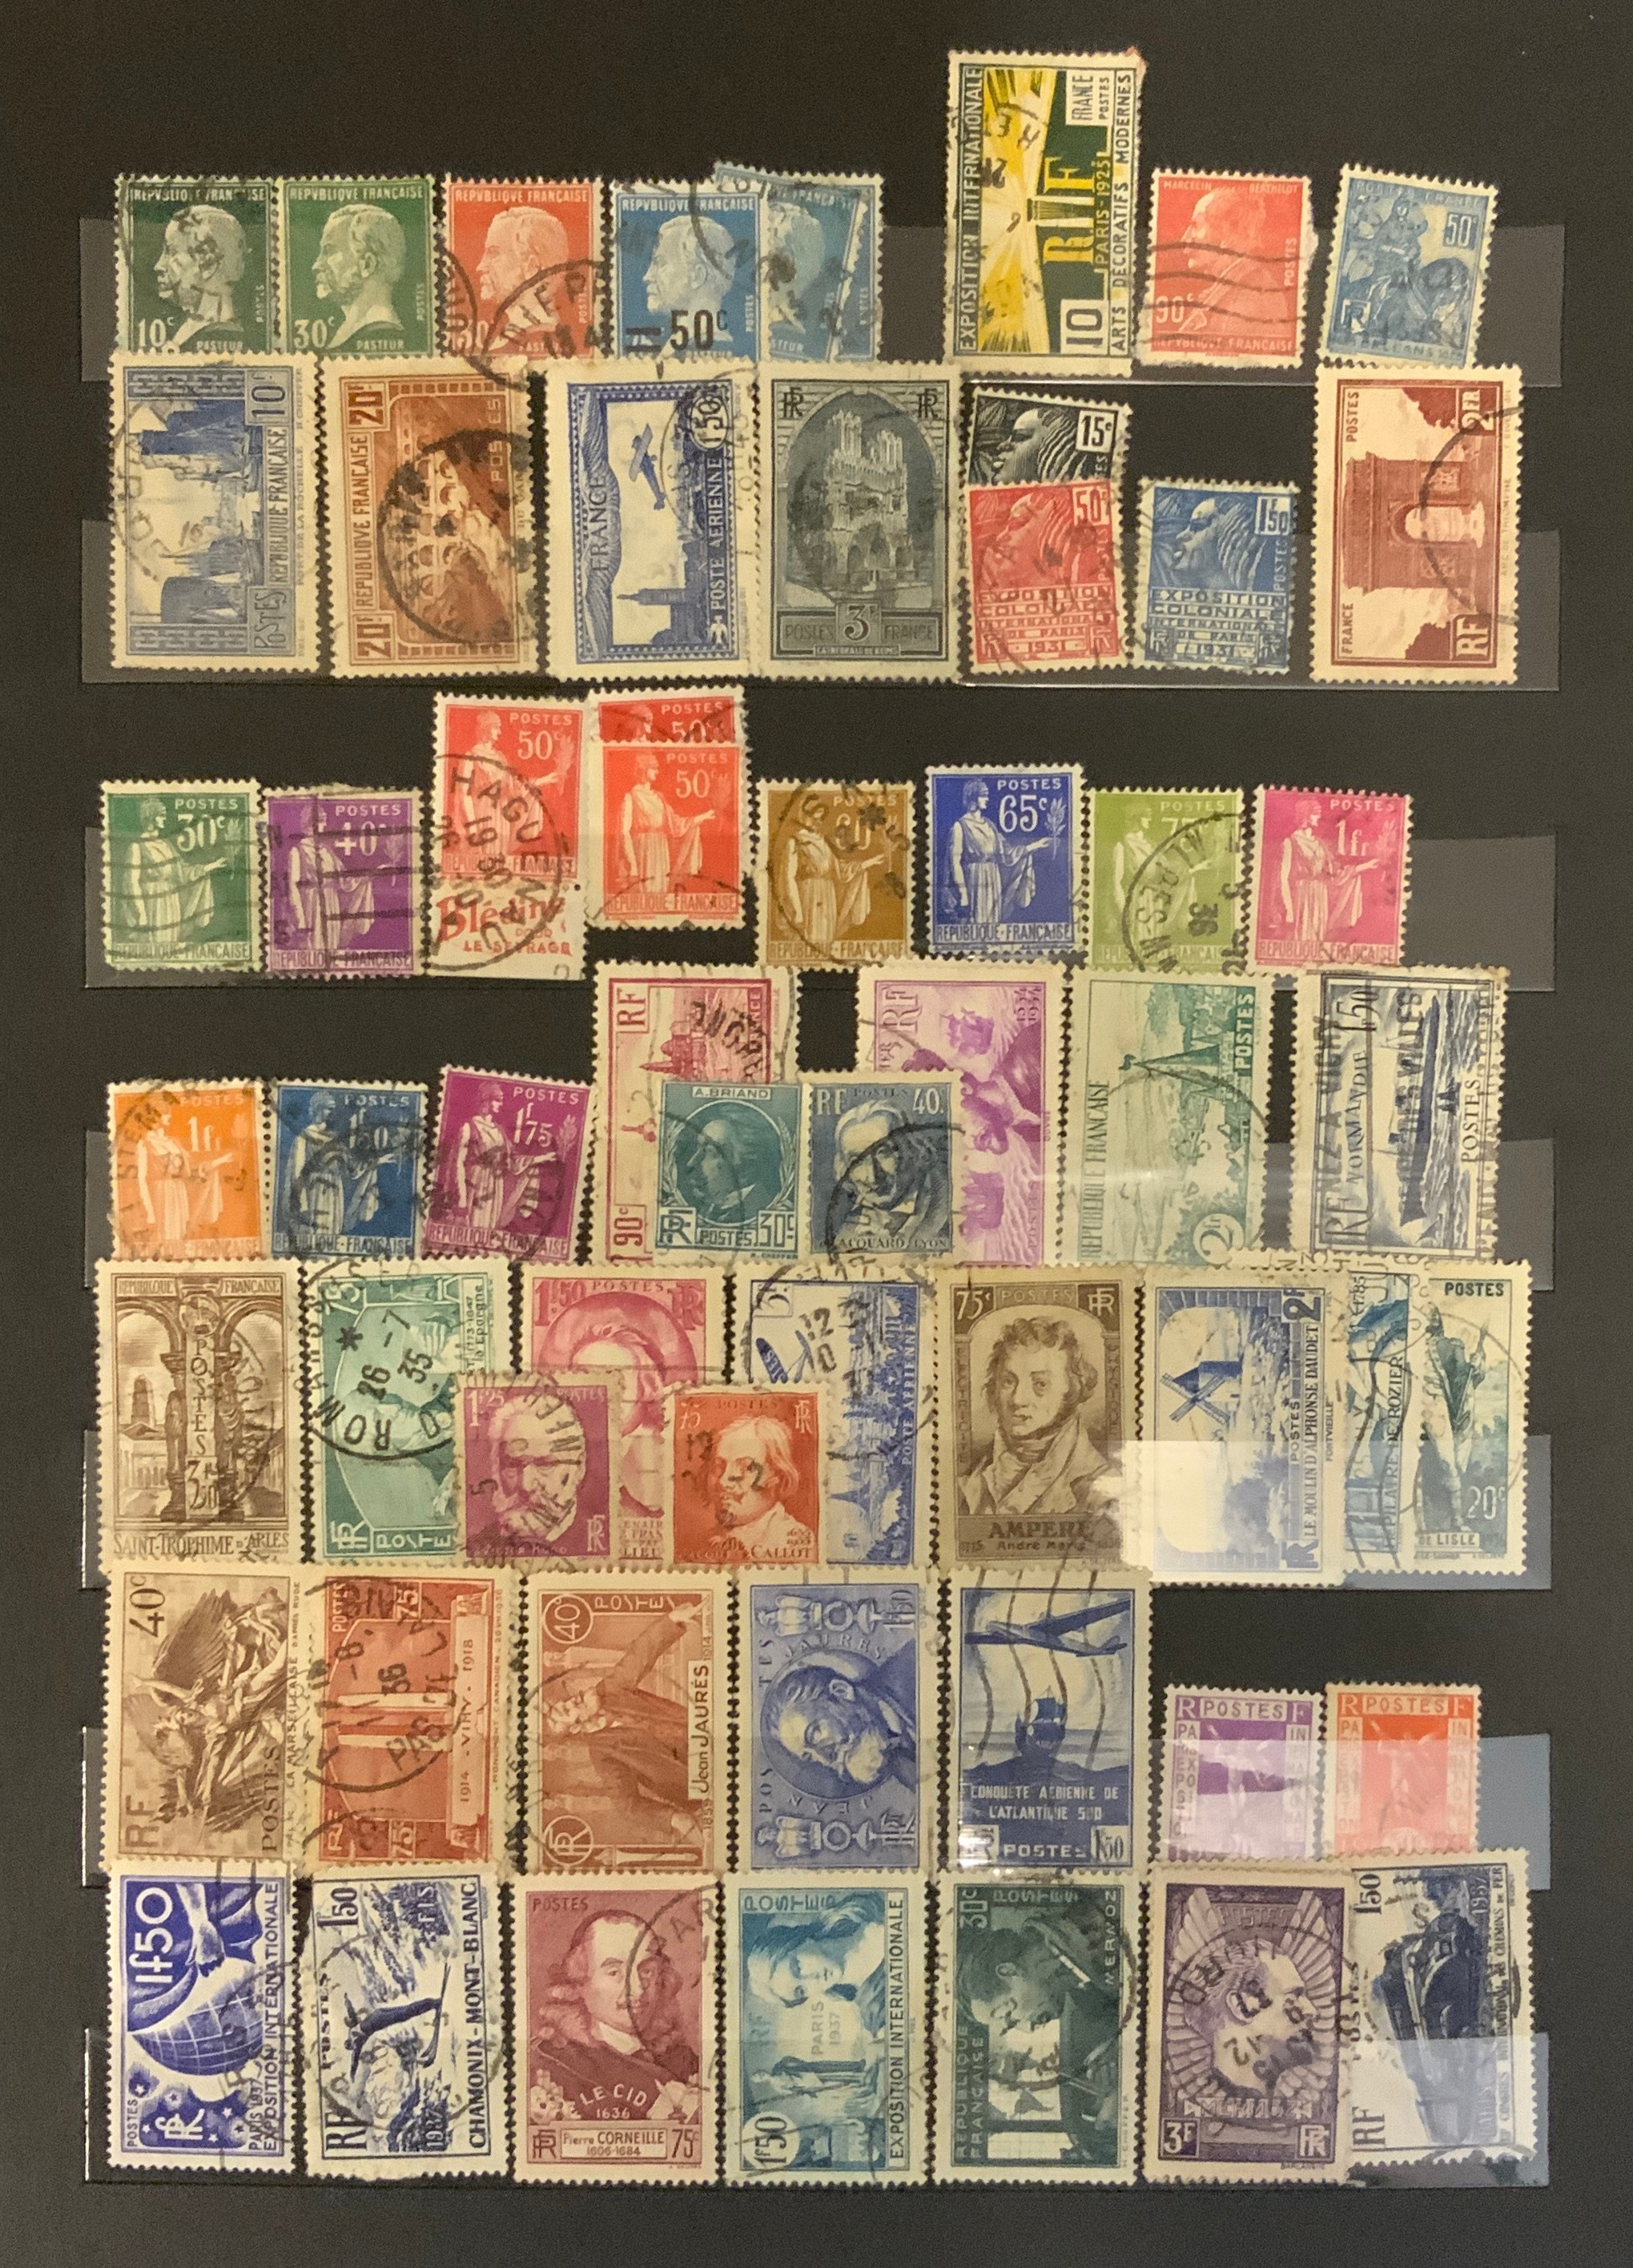 STOCKBOOK WITH STAMPS FROM VARIOUS COUNTRIES INCLUDING AUSTRIA, BELGIUM, FRANCE